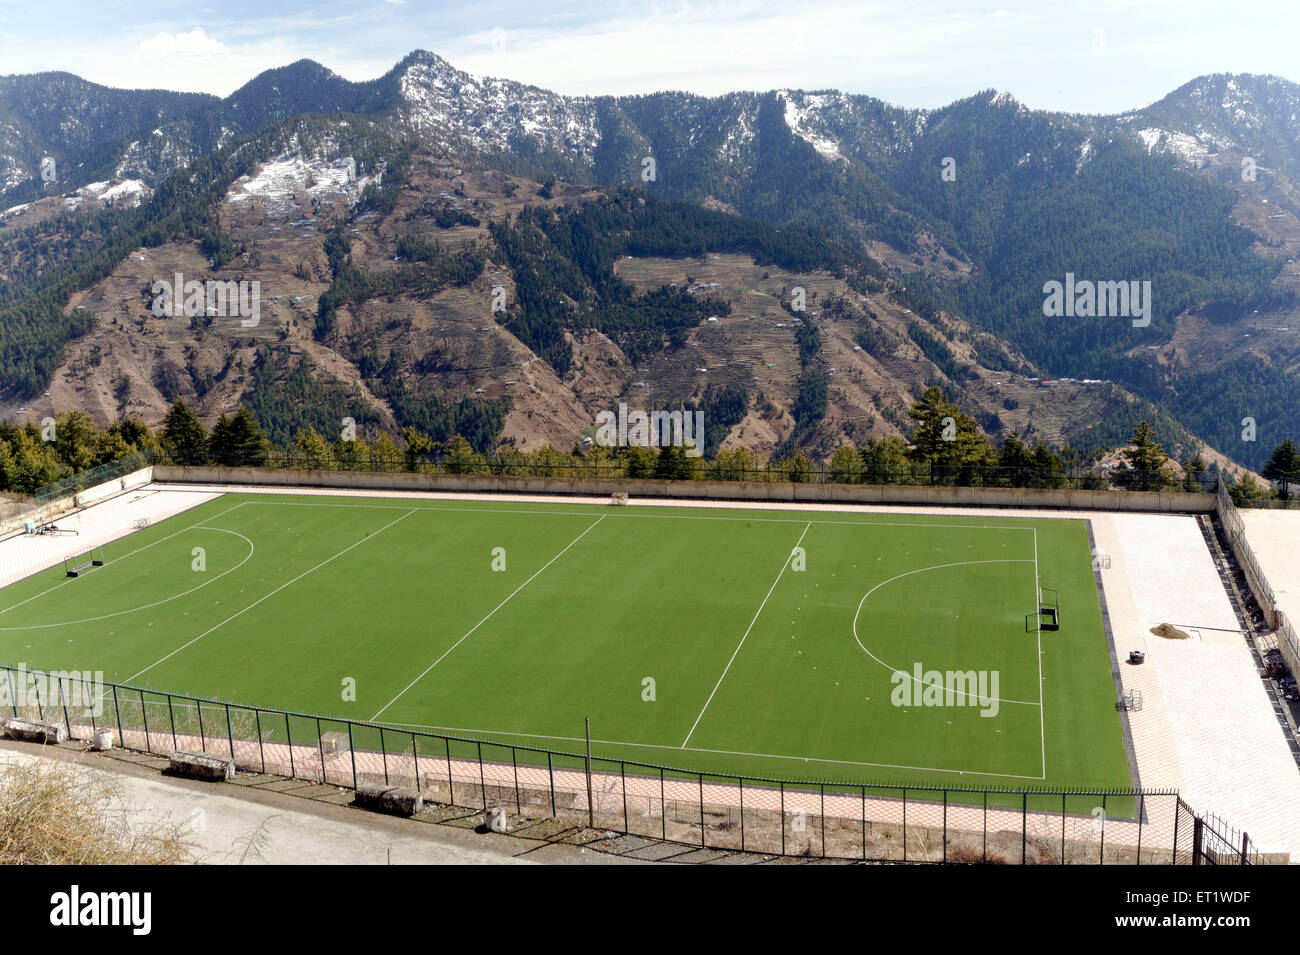 Rajiv Gandhi High Altitude Artificial Hockey Ground at Himachal Pradesh India  Asia - Stock Image